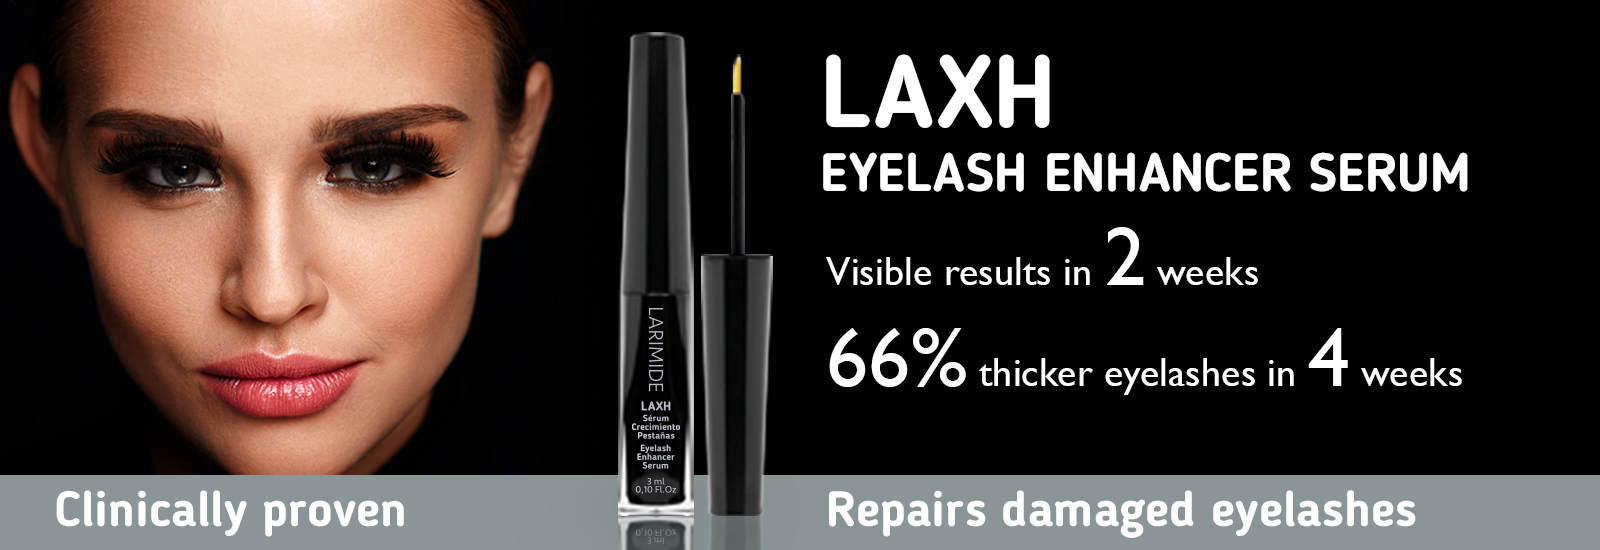 banner lEyelash Enhancer Serum LAXH larimide